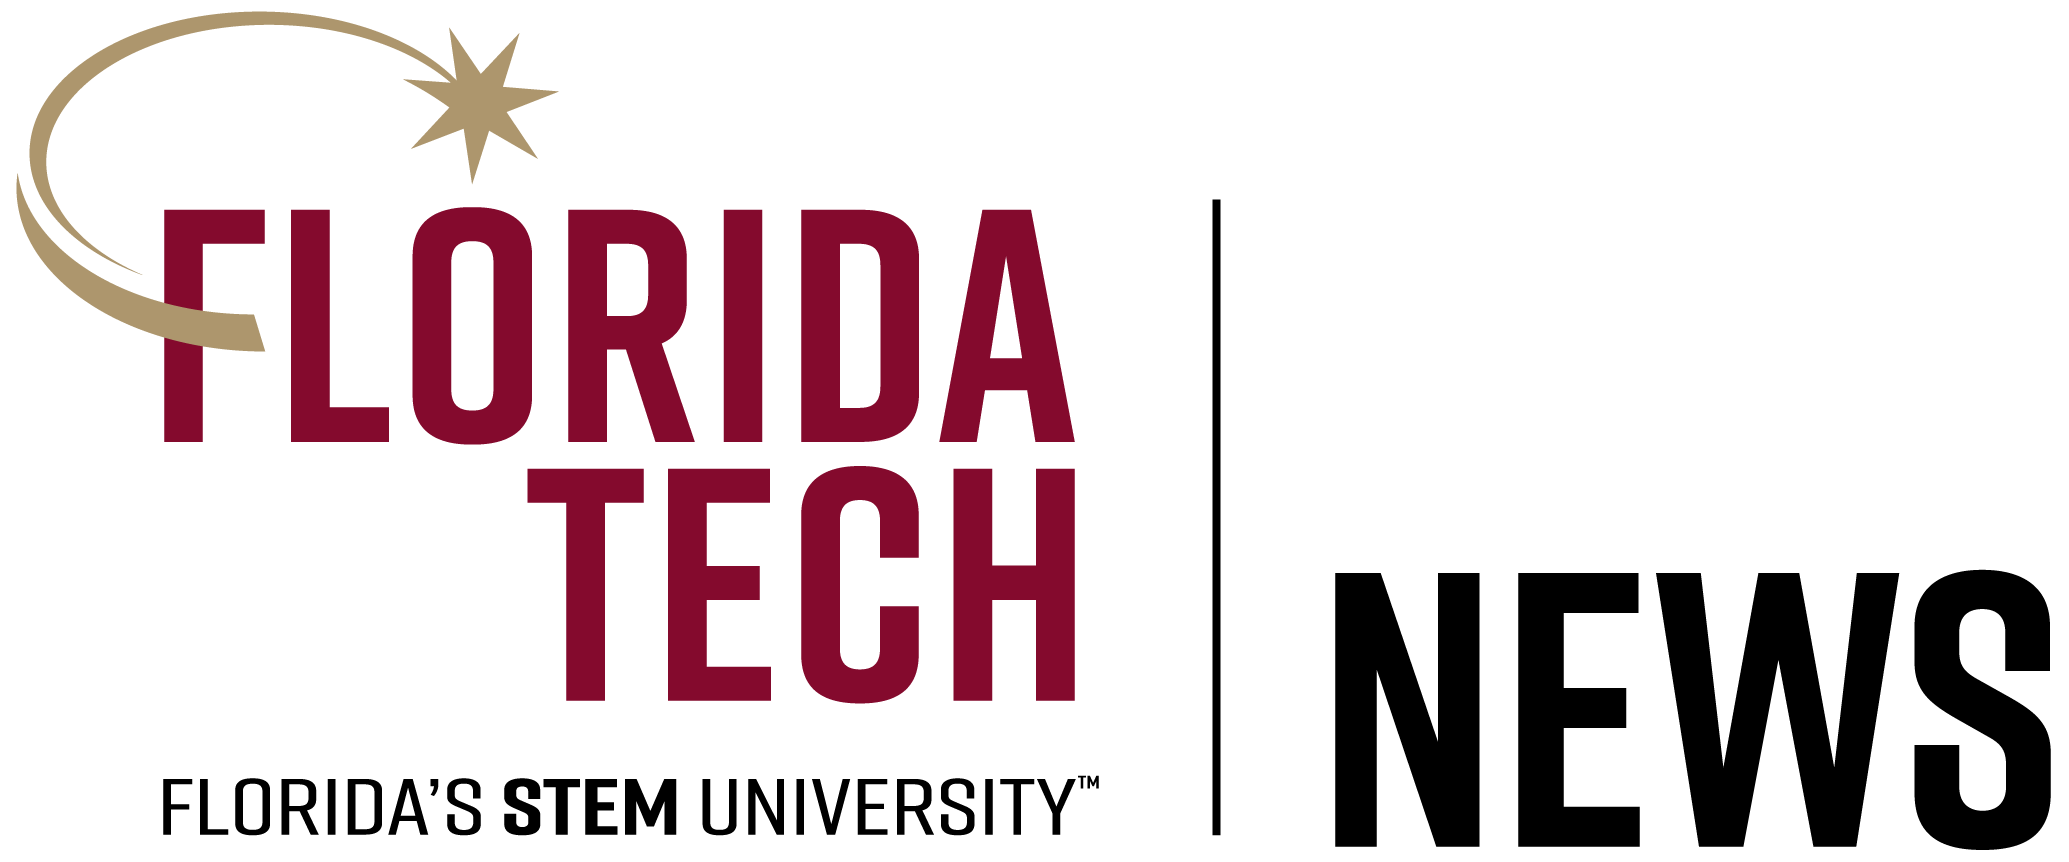 Florida Tech News